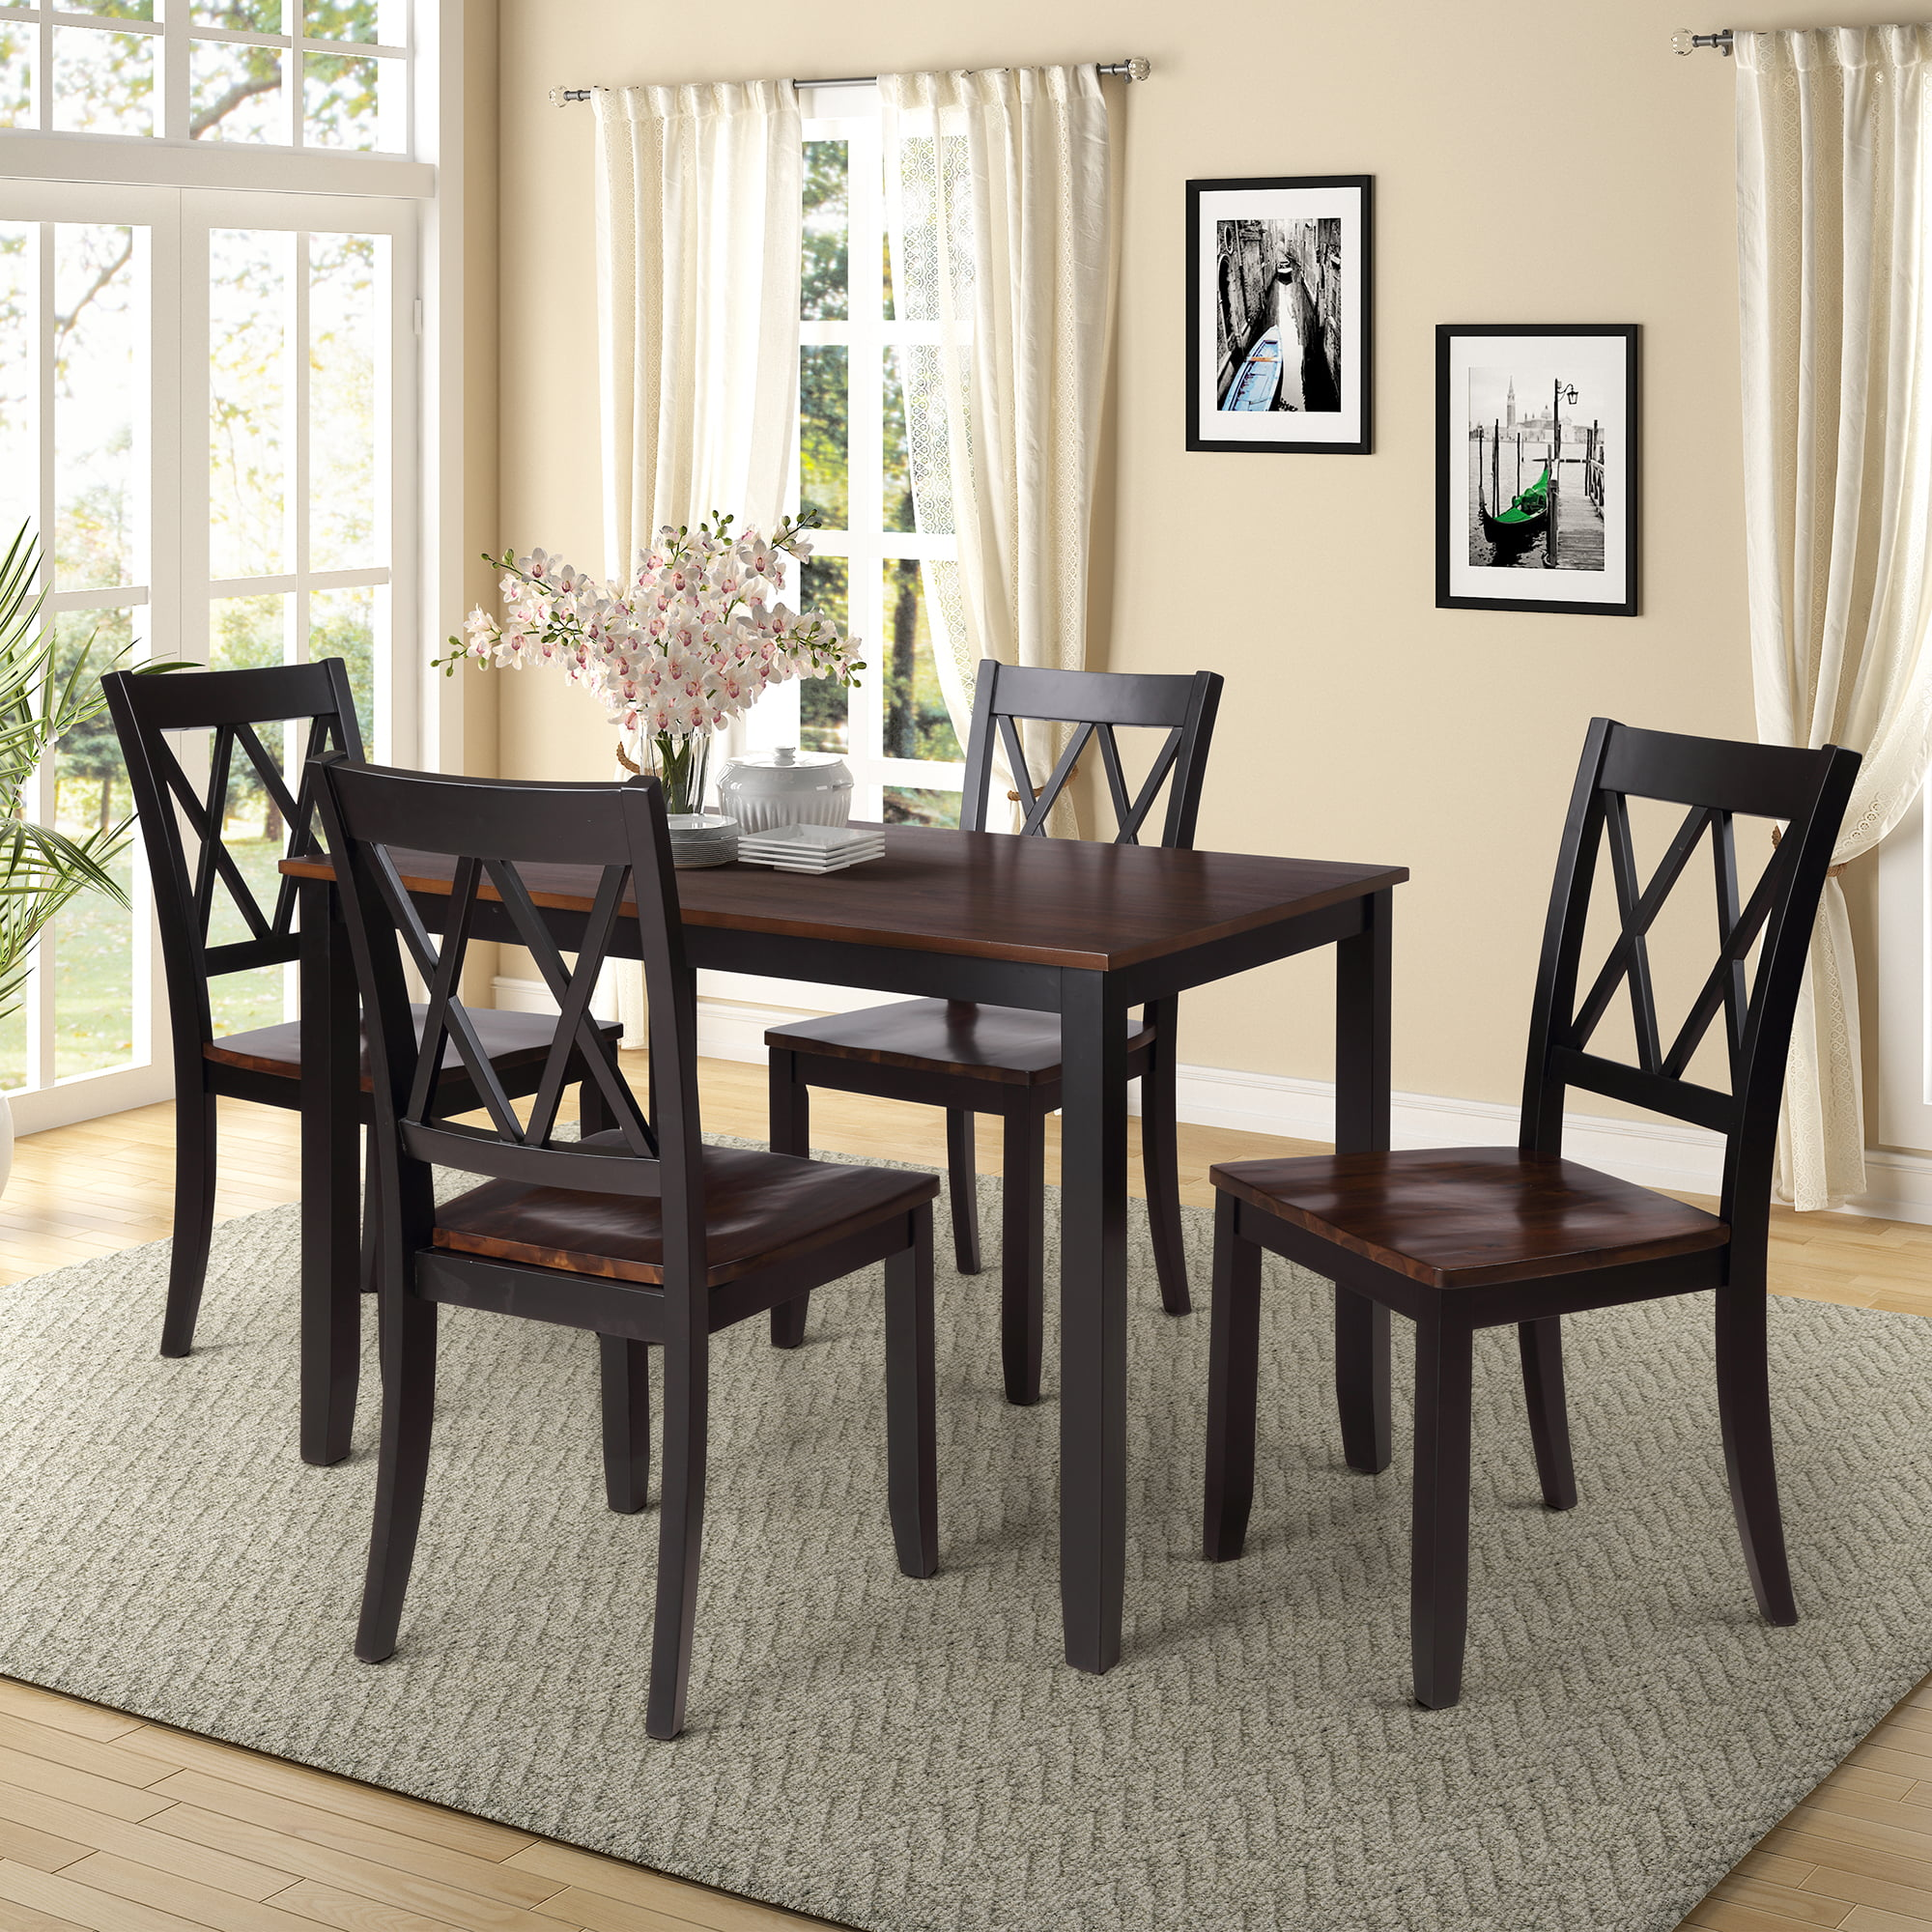 Clearance!Black Dining Table Set for 4, Modern 5 Piece Dining Room